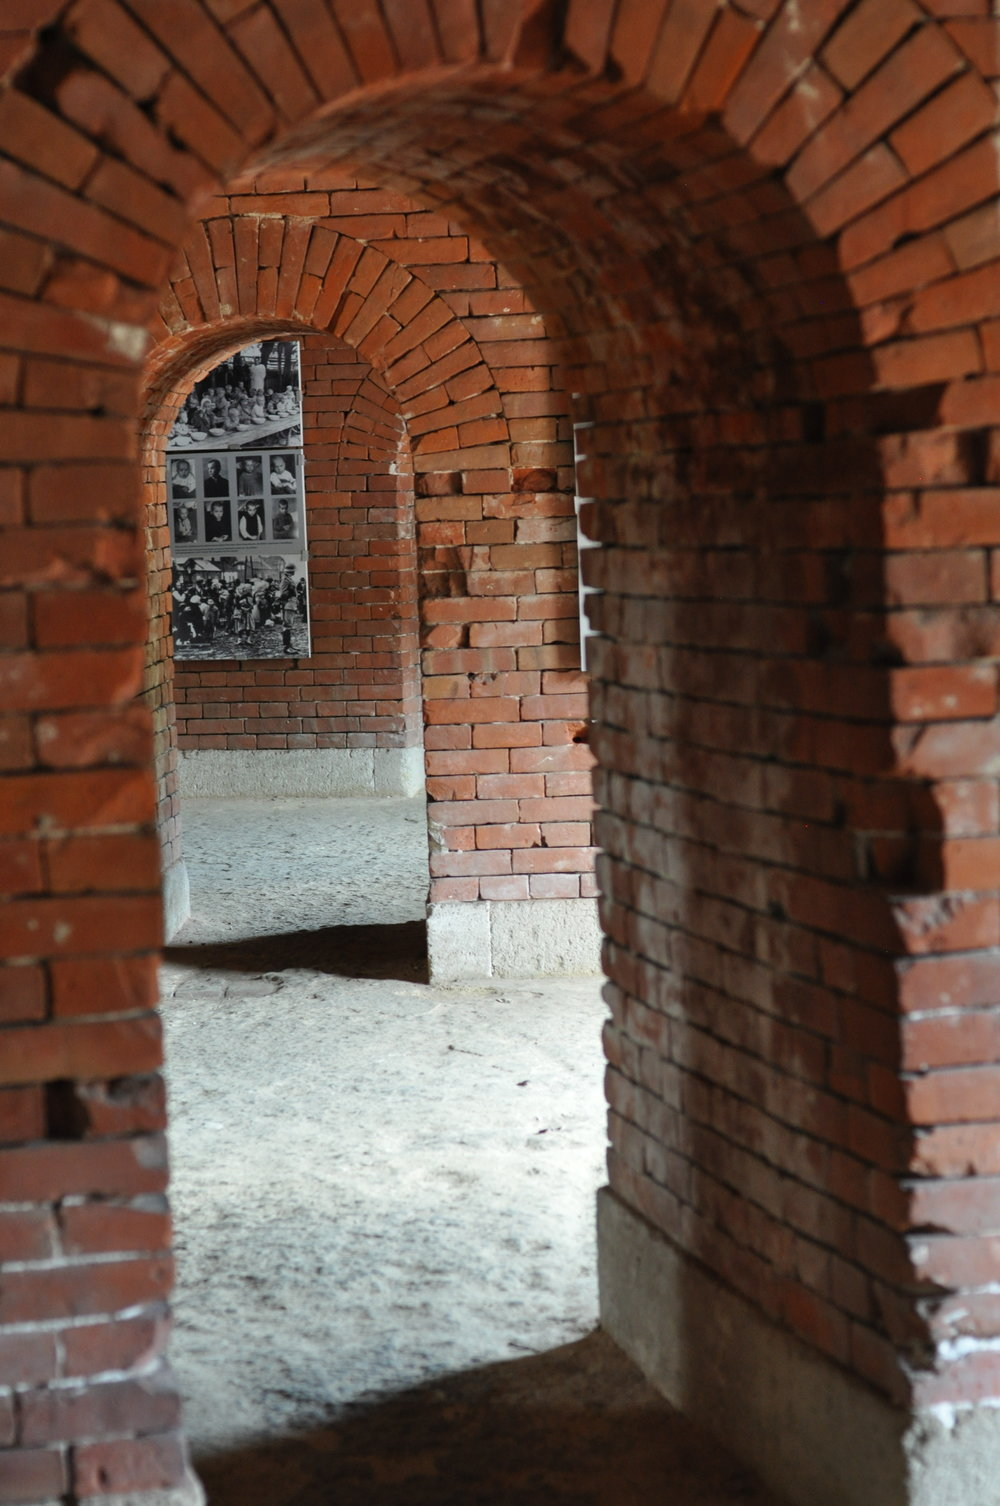 Looking through the cells in the Rotunda in Zamosc, Poland